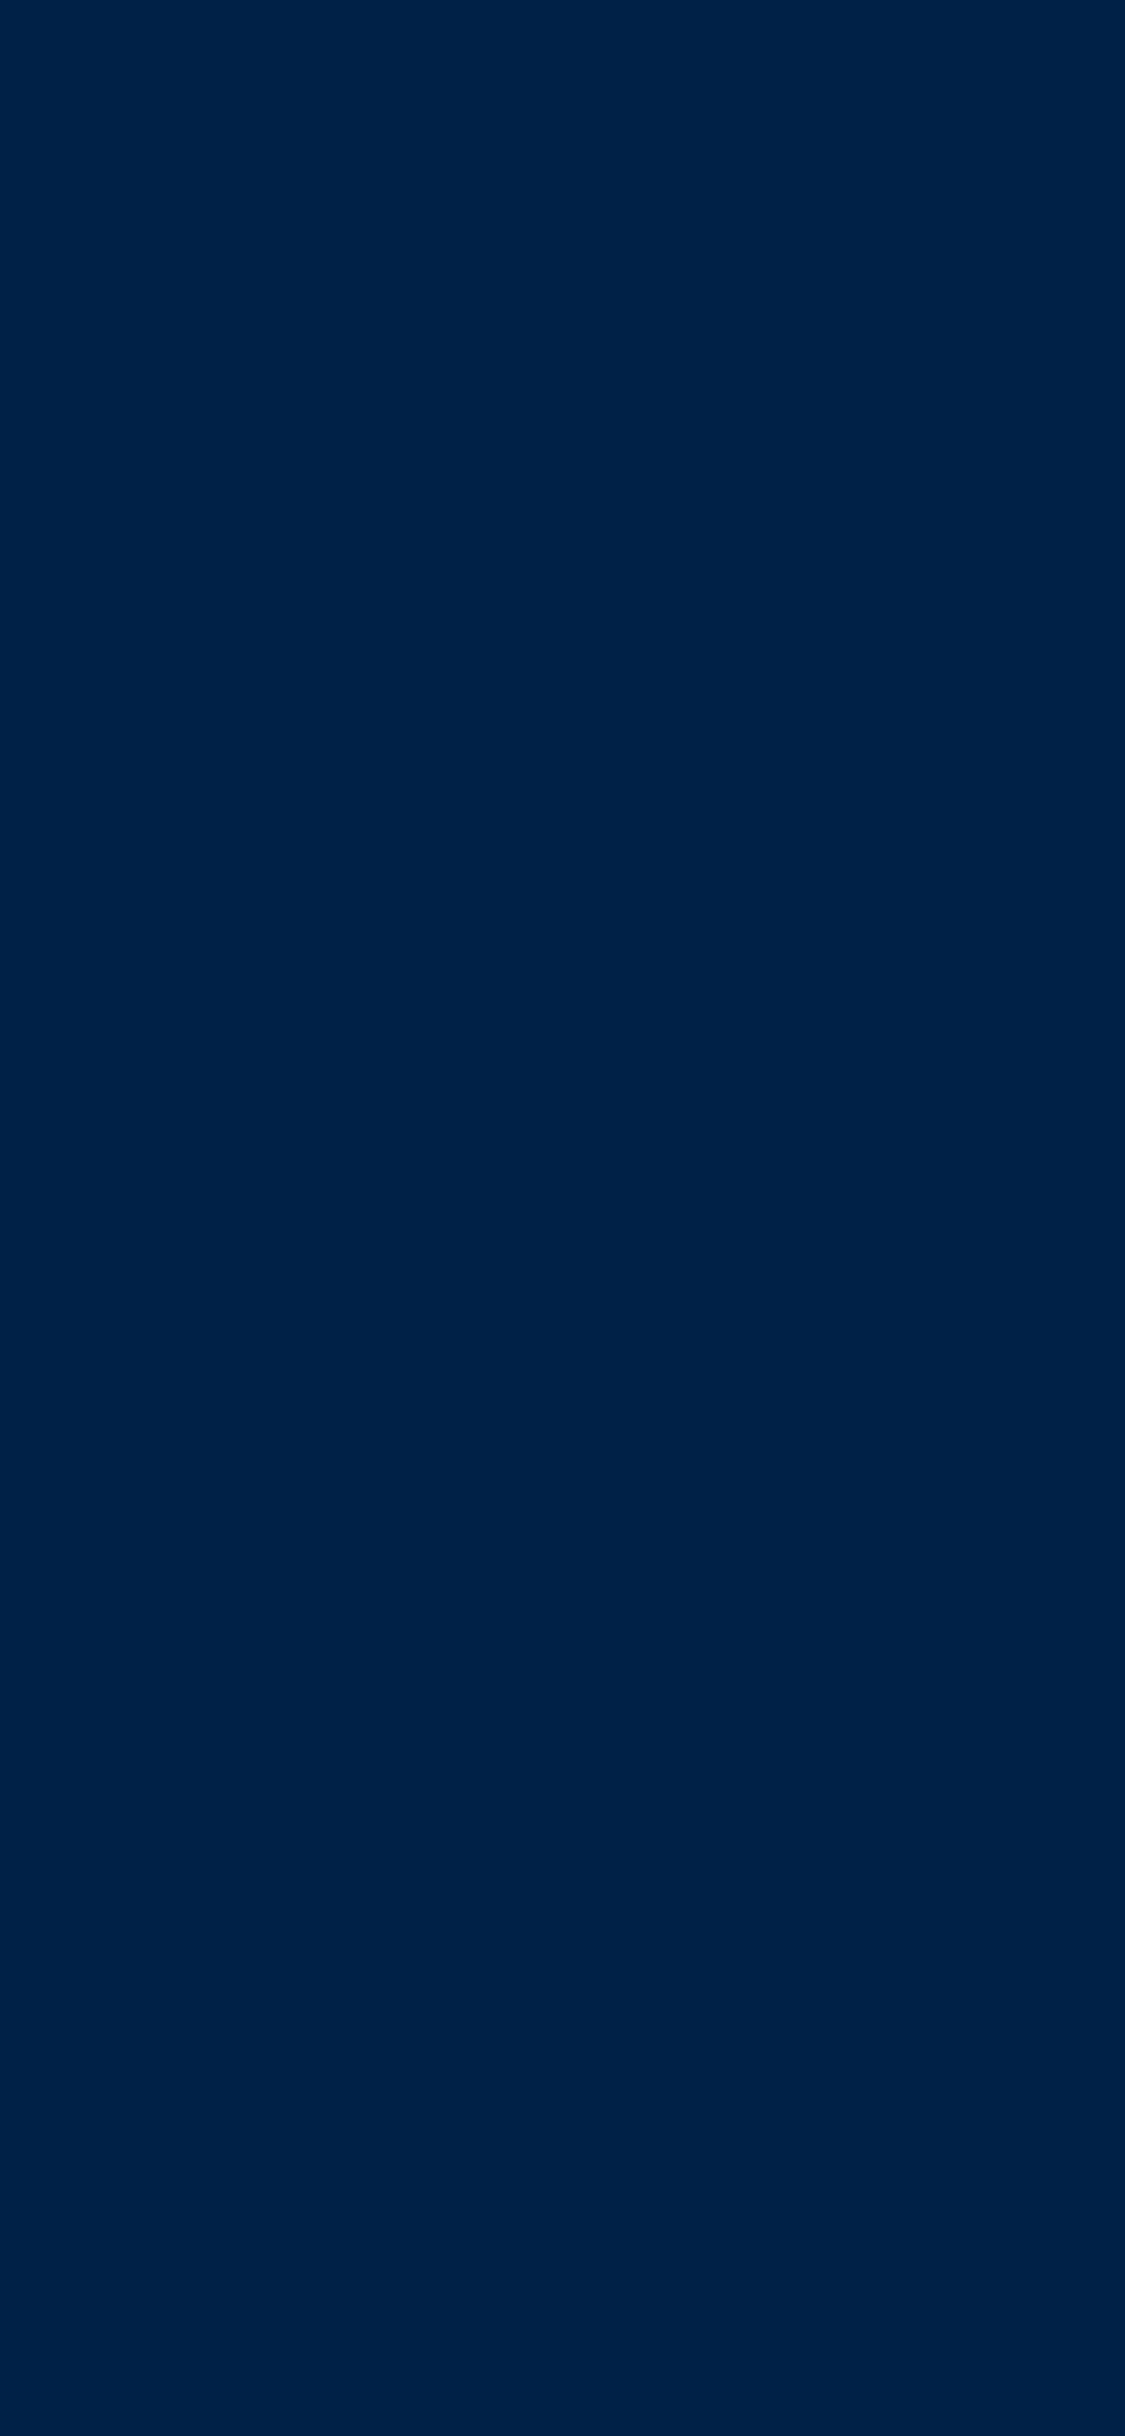 1125x2436 Oxford Blue Solid Color Background